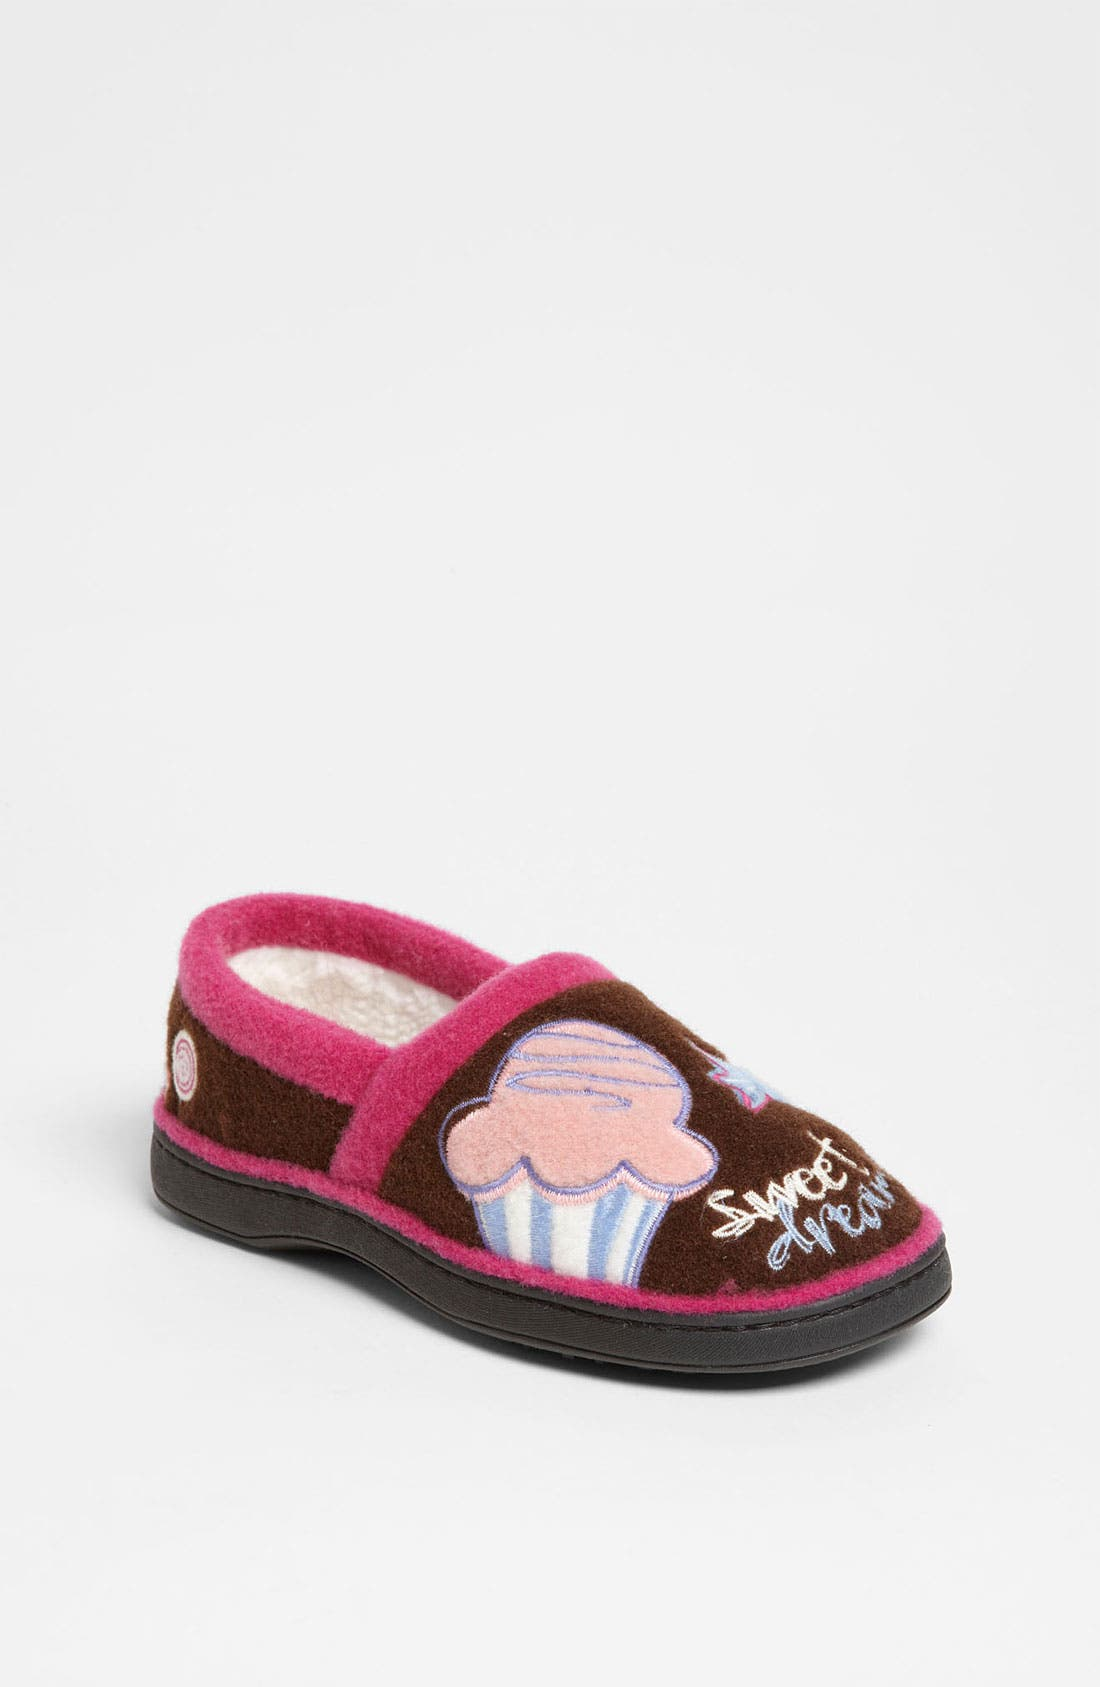 Alternate Image 1 Selected - Acorn 'Sweet Dreams' Slipper (Toddler, Little Kid & Big Kid)